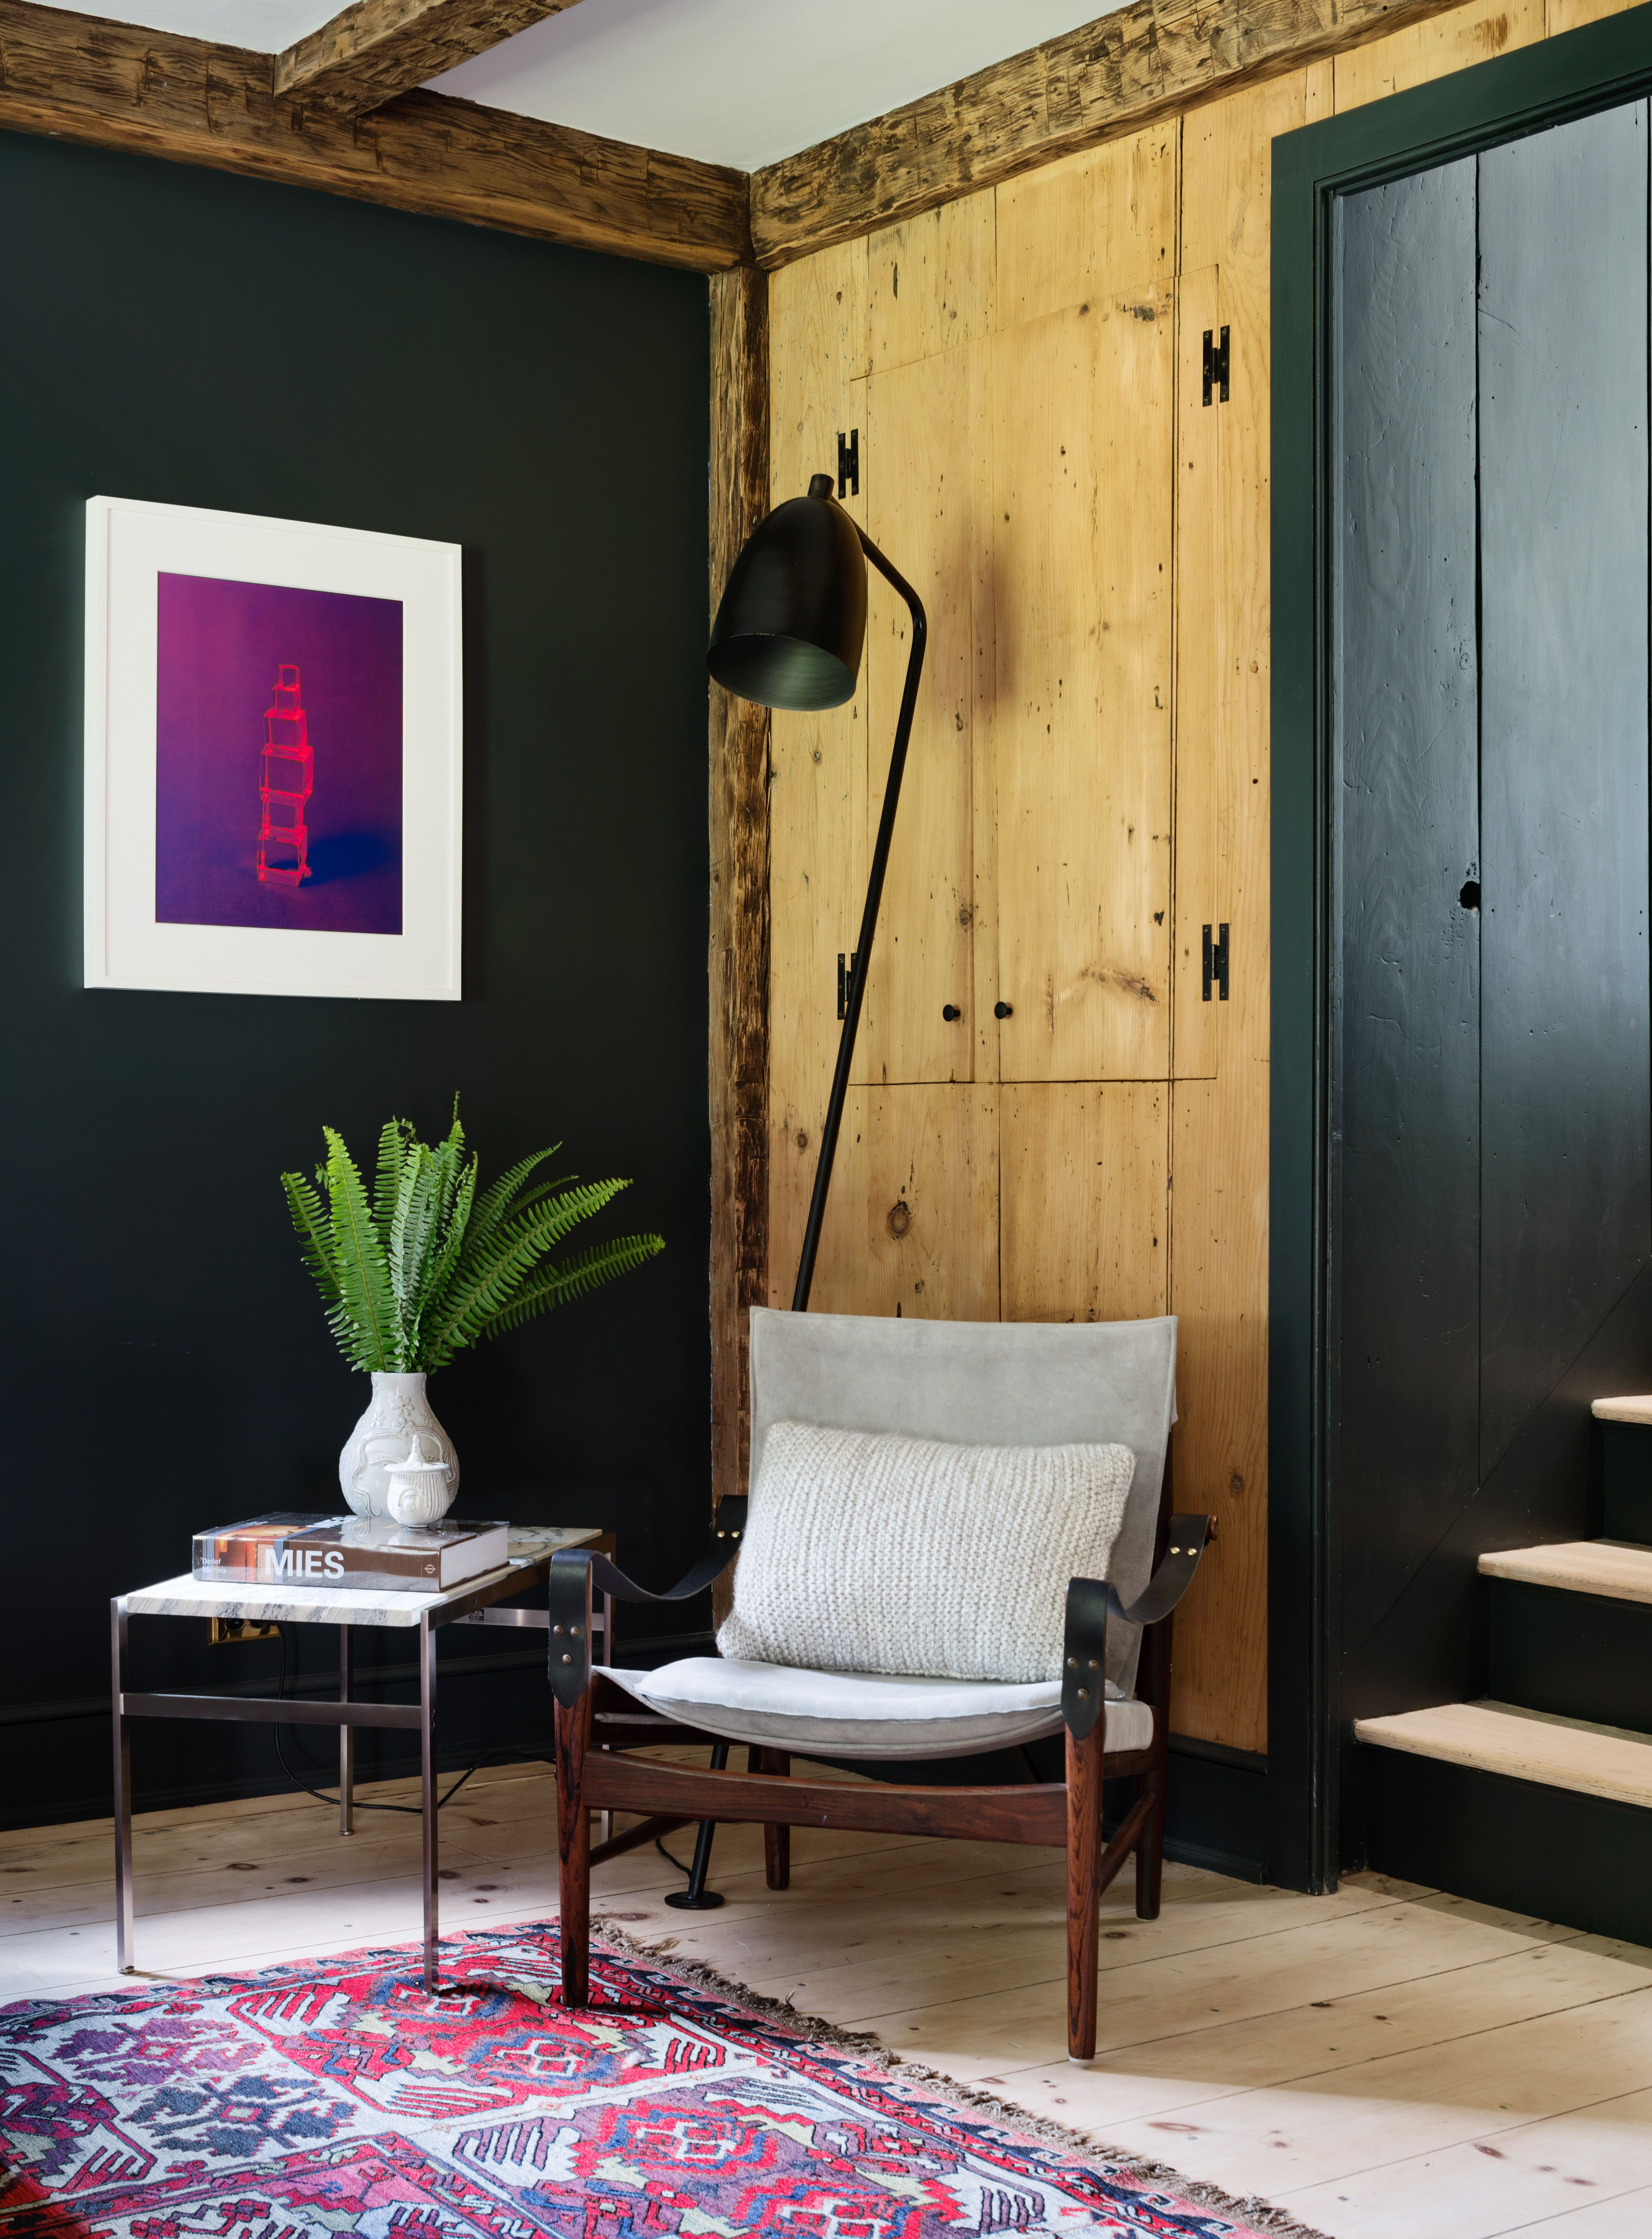 Rendered Garden Wall Ideas, 32 Green Room Ideas How To Decorate With Green Wall Paint Decor